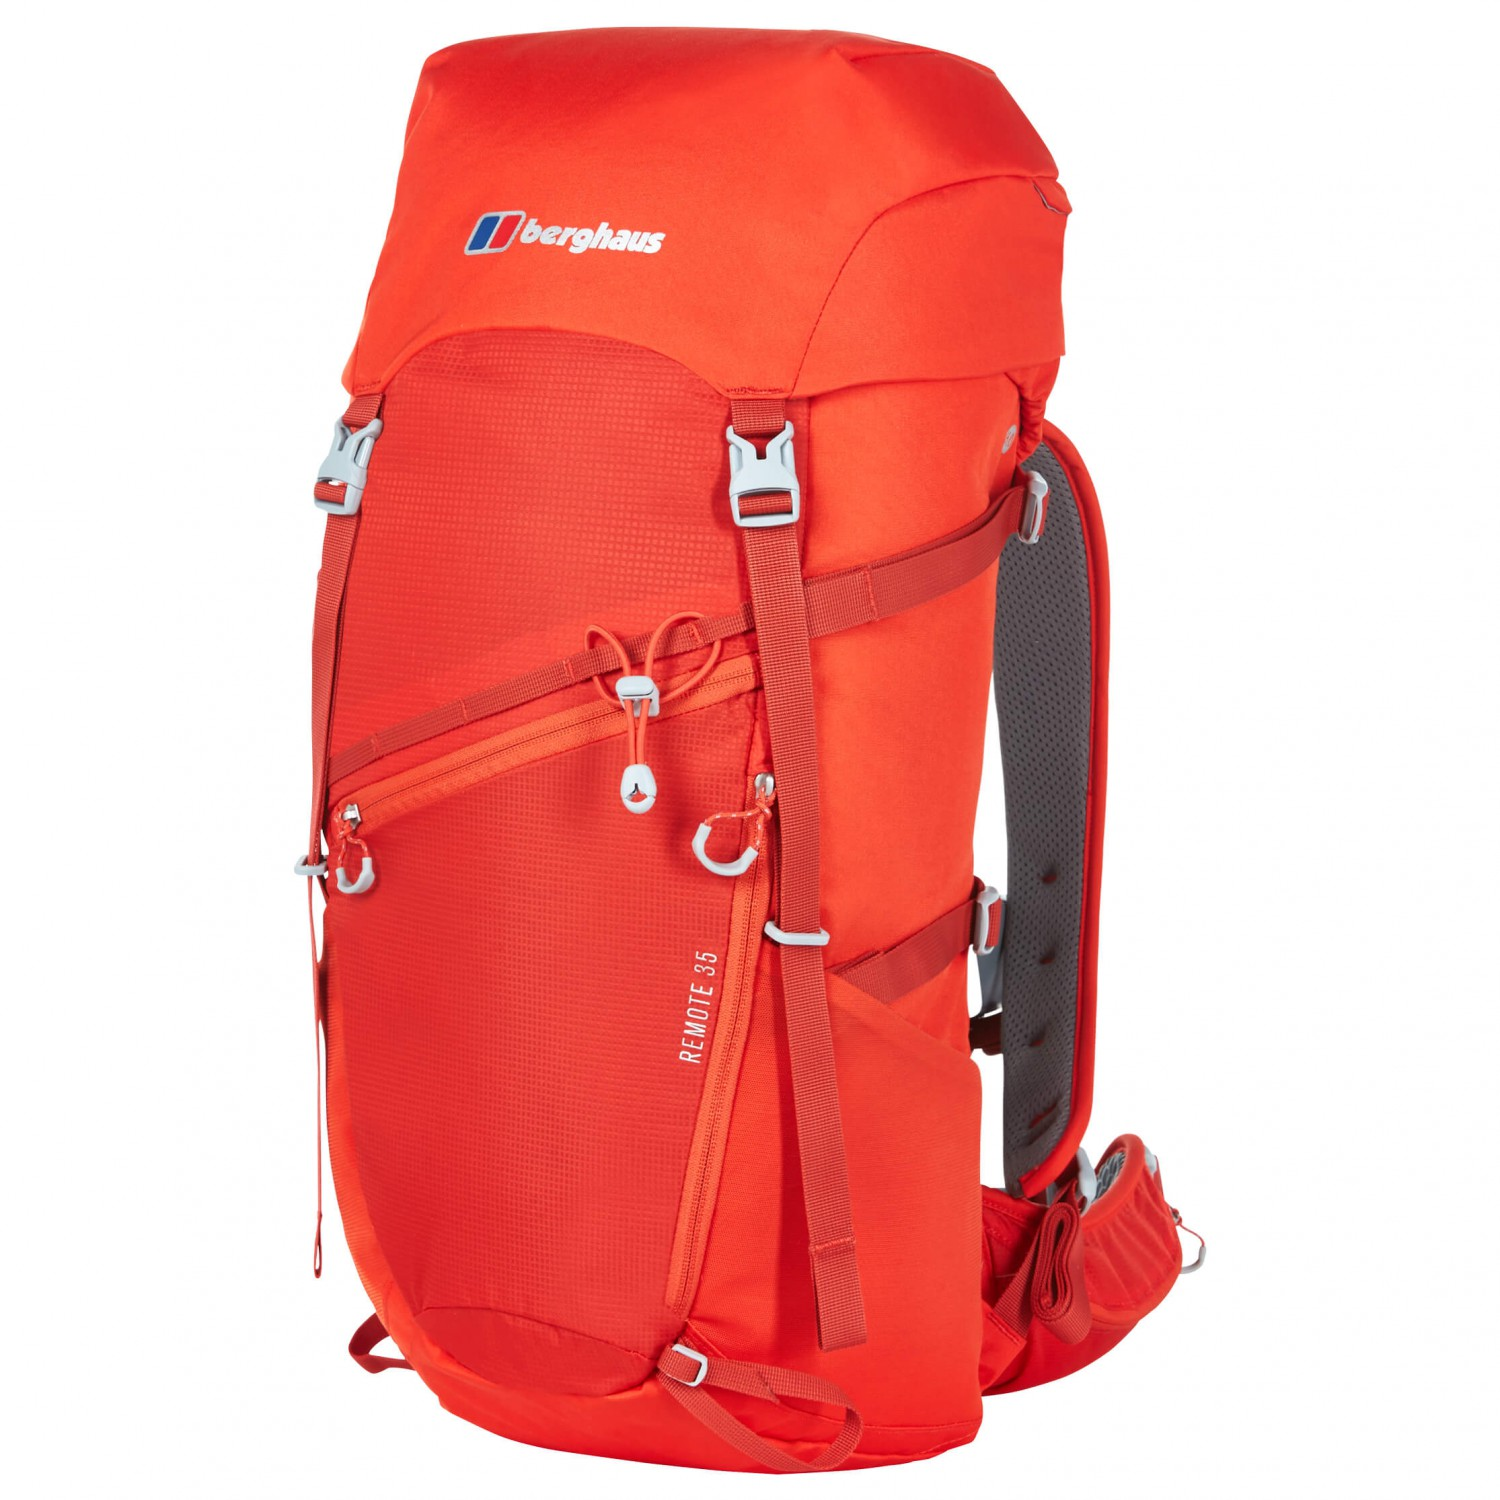 dd9d21fc5 Berghaus Remote 35 - Mountaineering Backpack